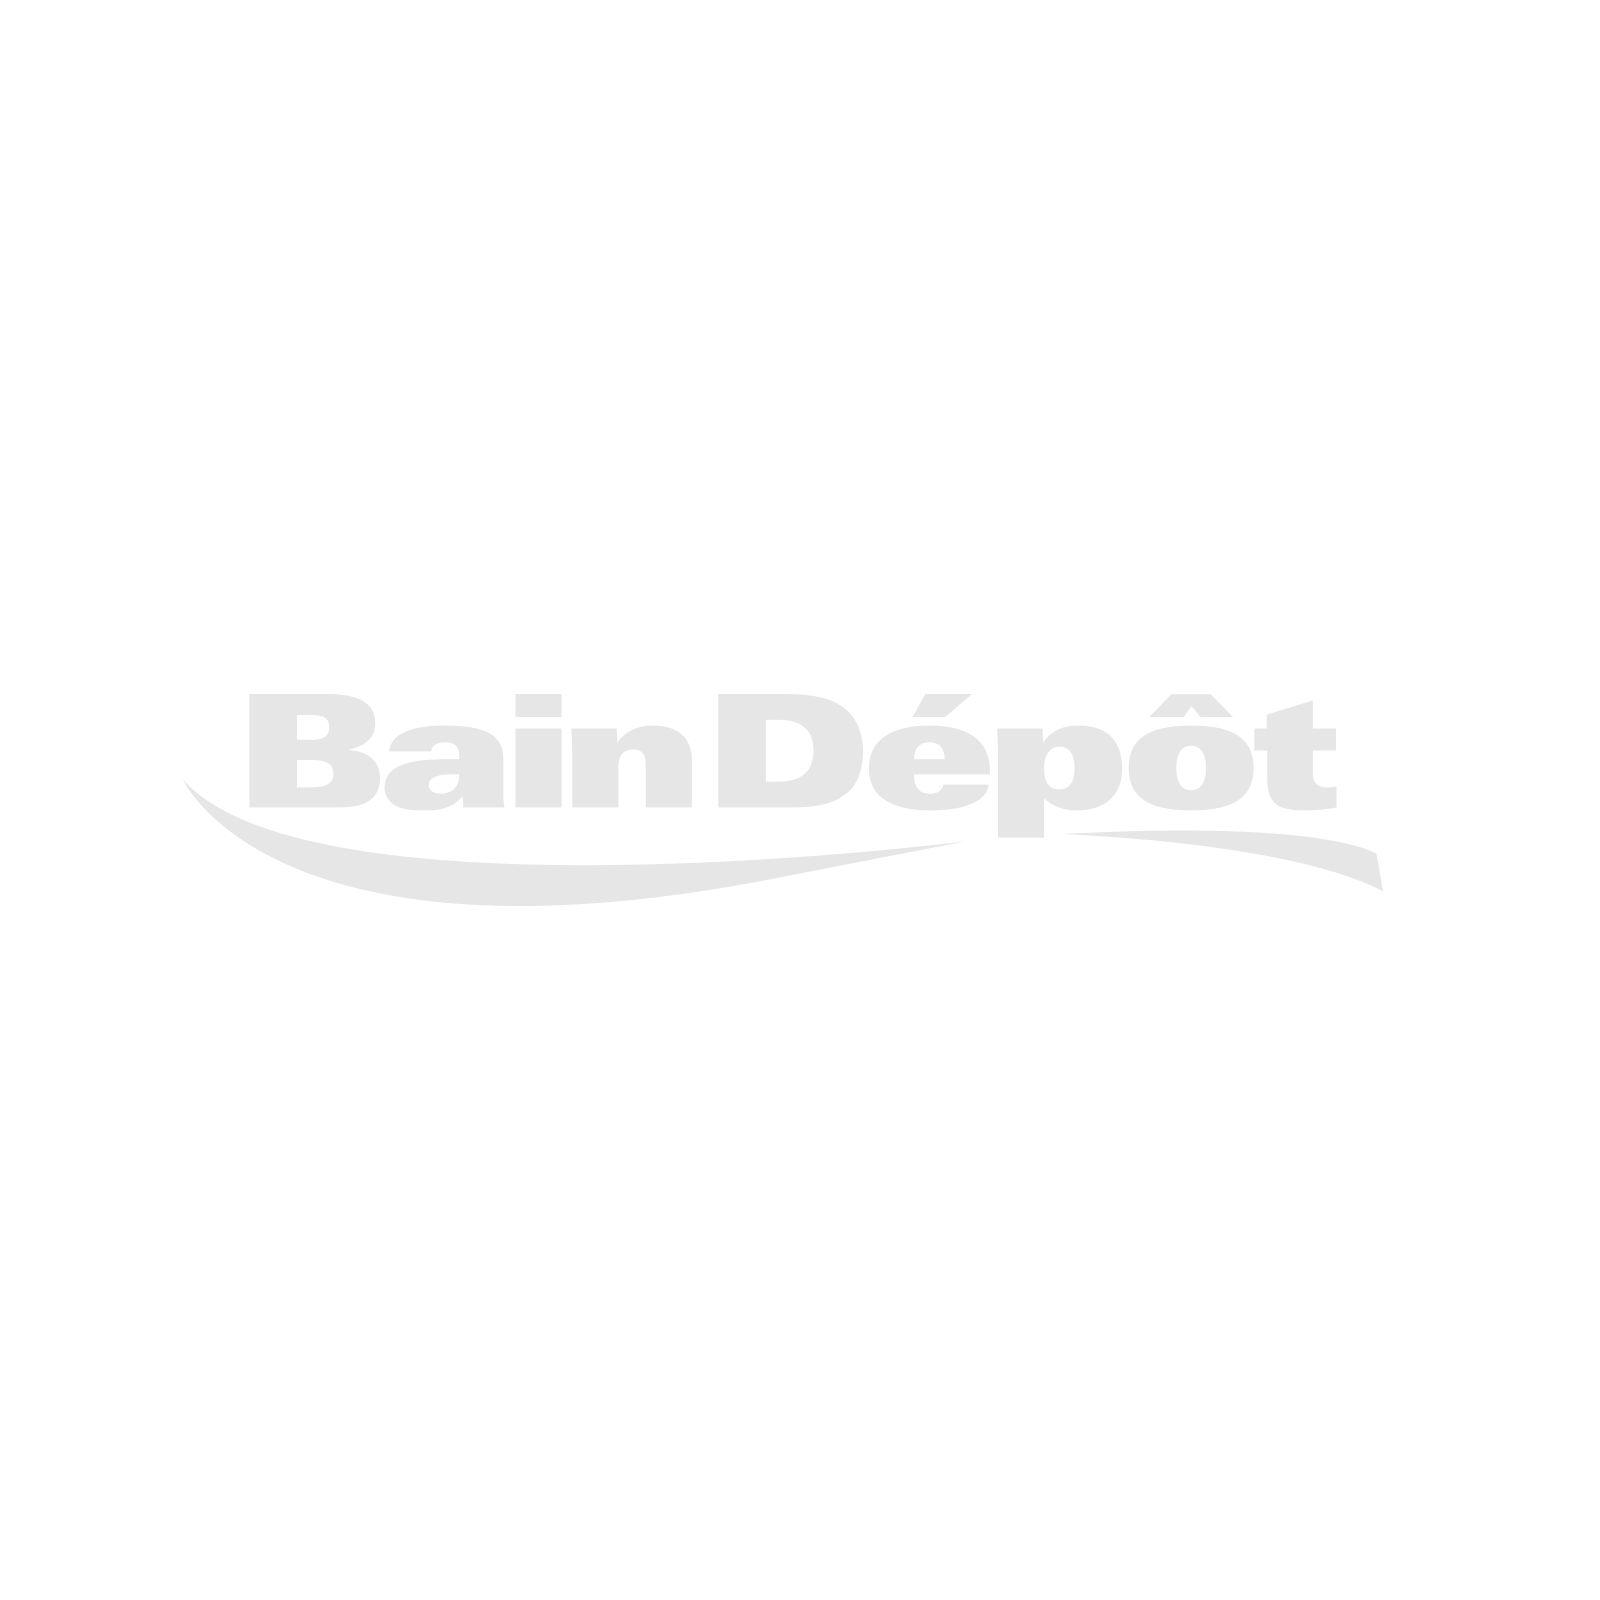 WARMUP- MAT for instalation within the adhesive layer under tiles or leveling compound convering 75 square feet